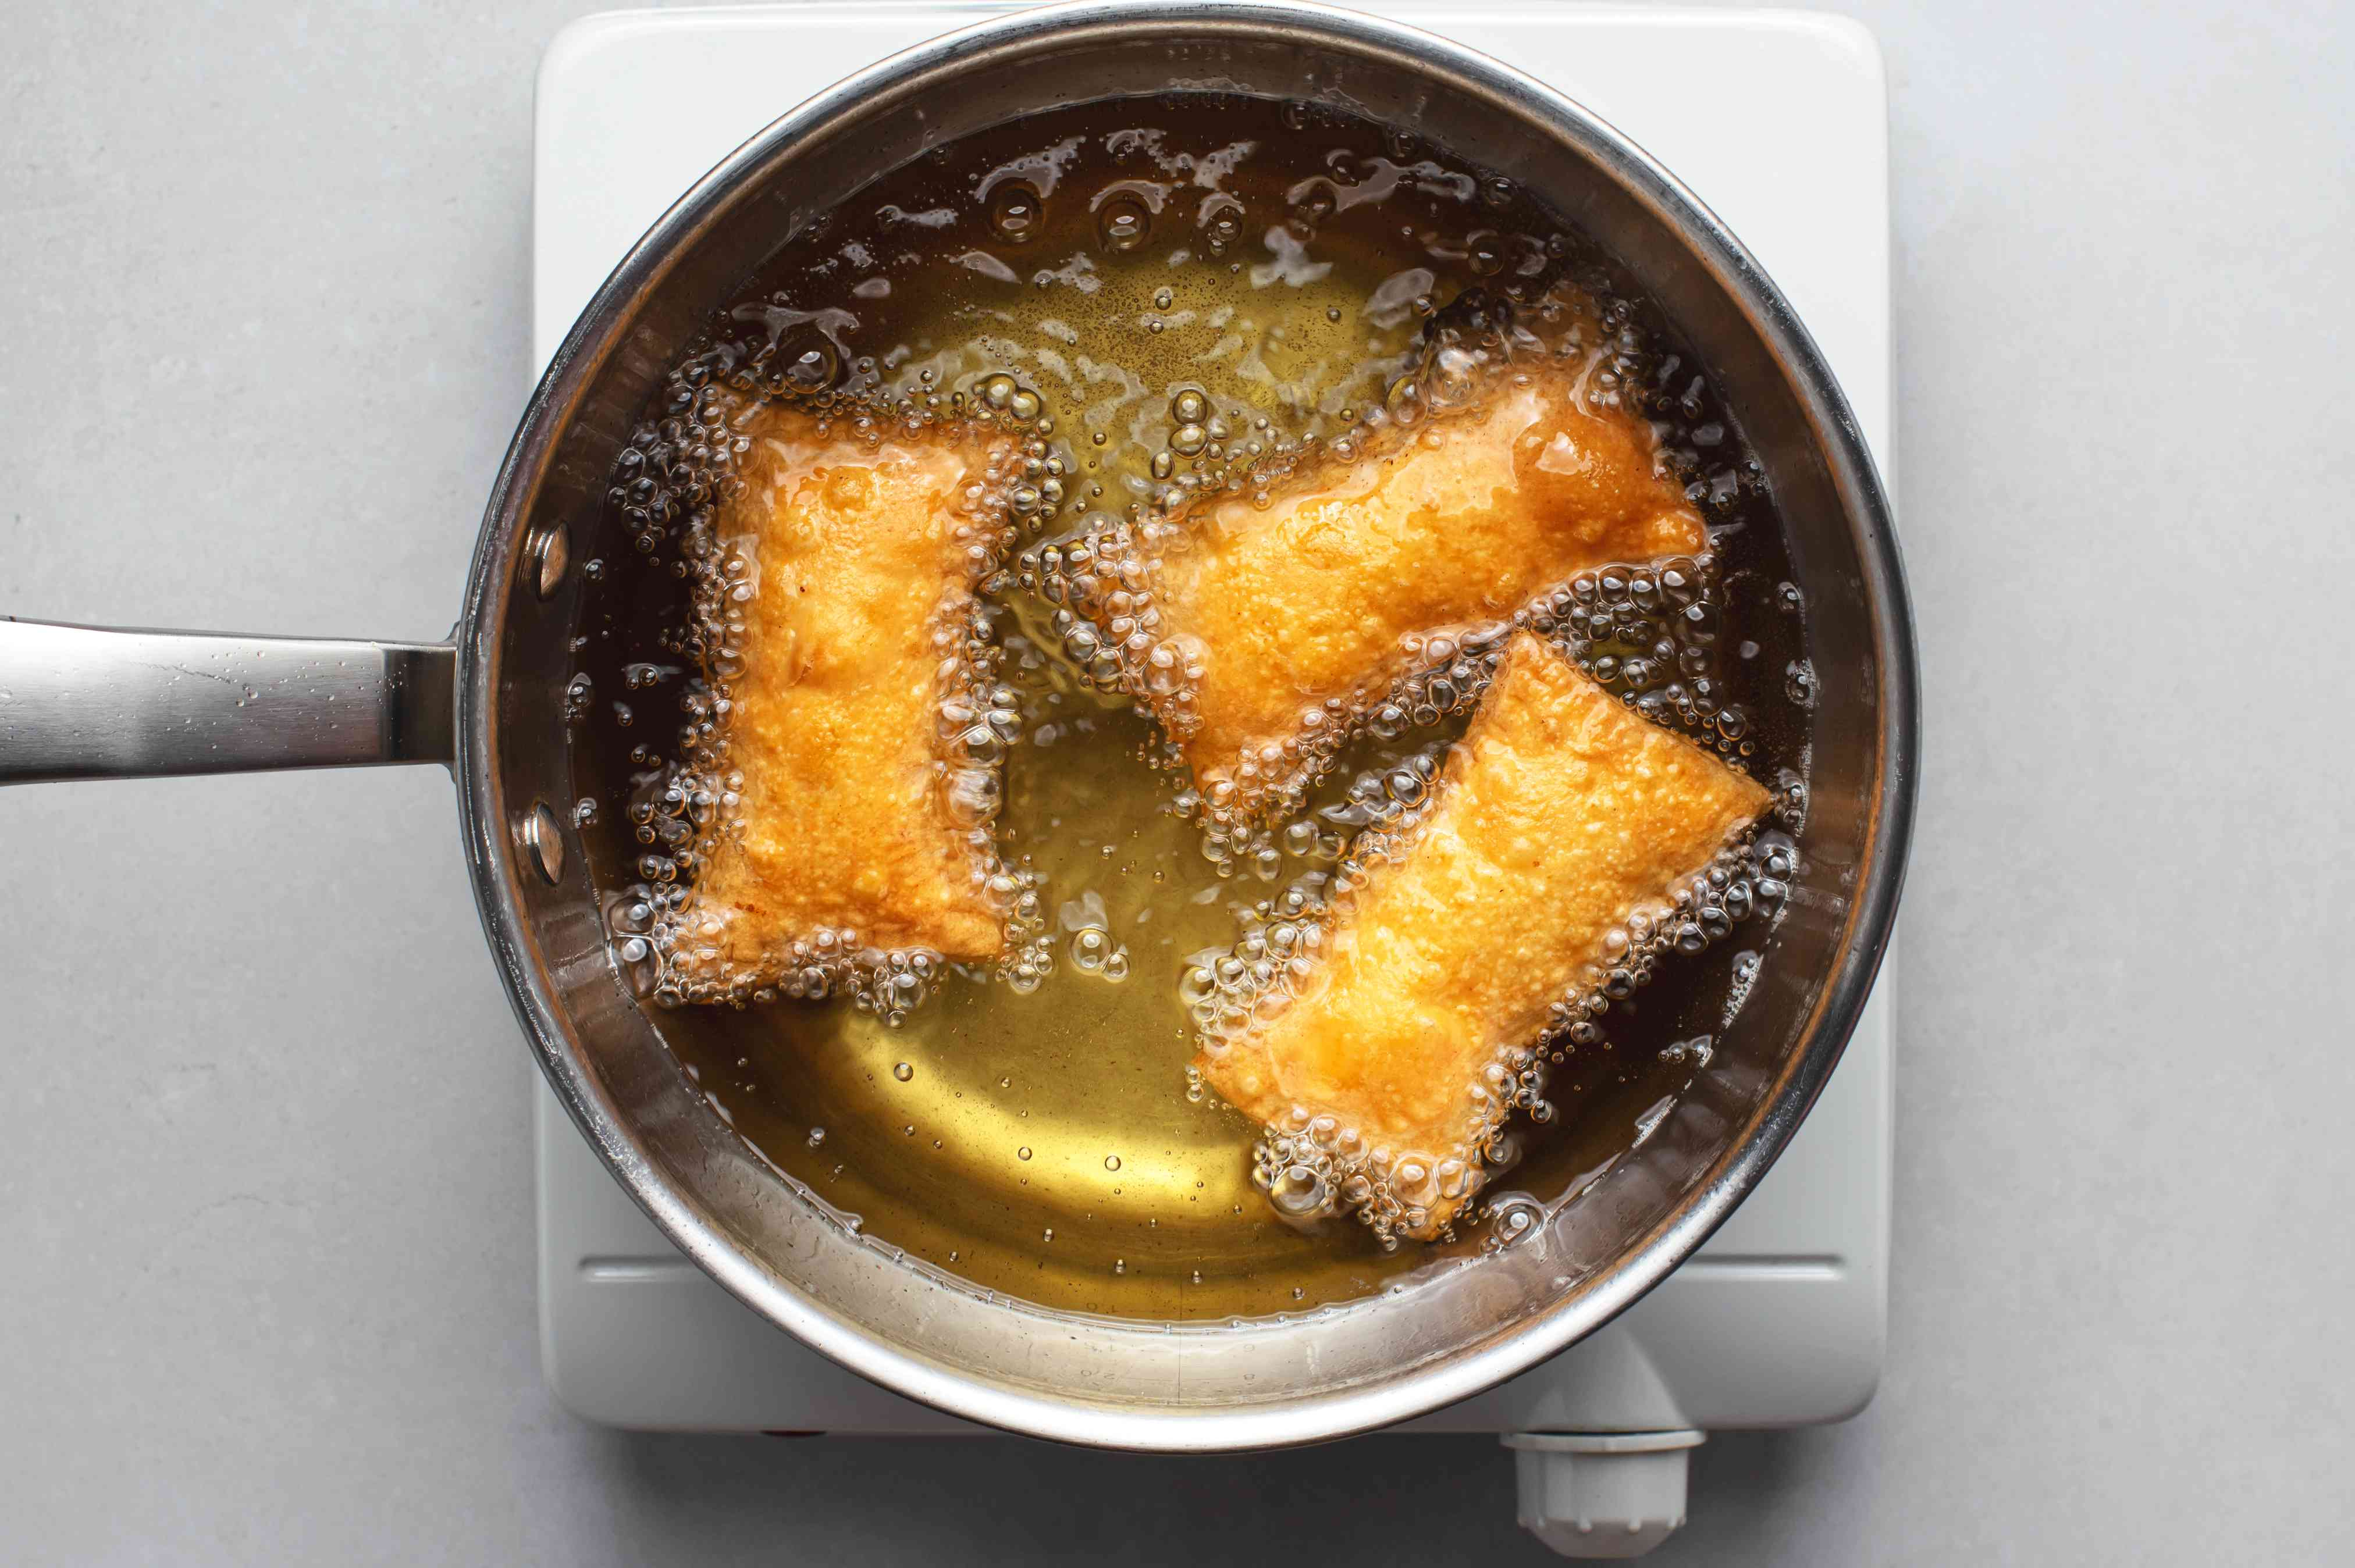 Pasteles frying in a pot of oil